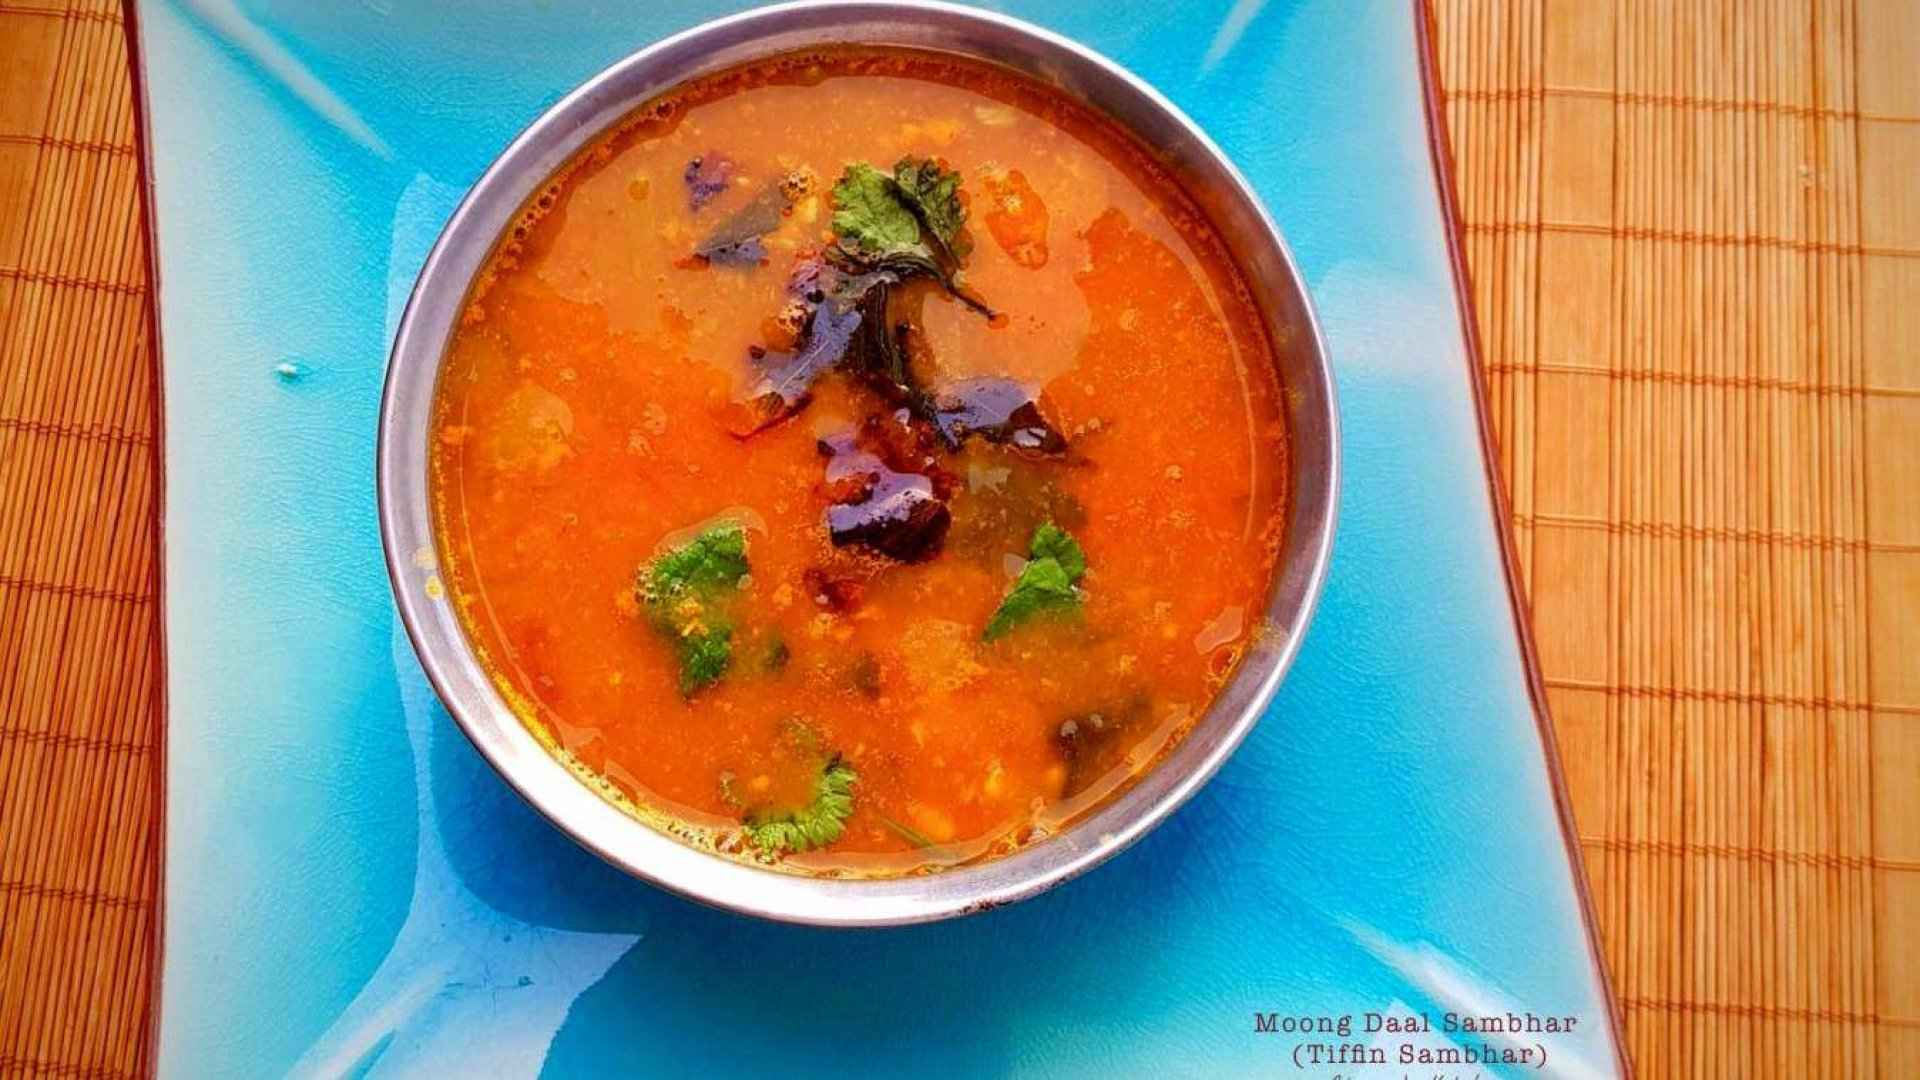 MOONG DAAL SAMBHAR/ TIFFIN SAMBHAR